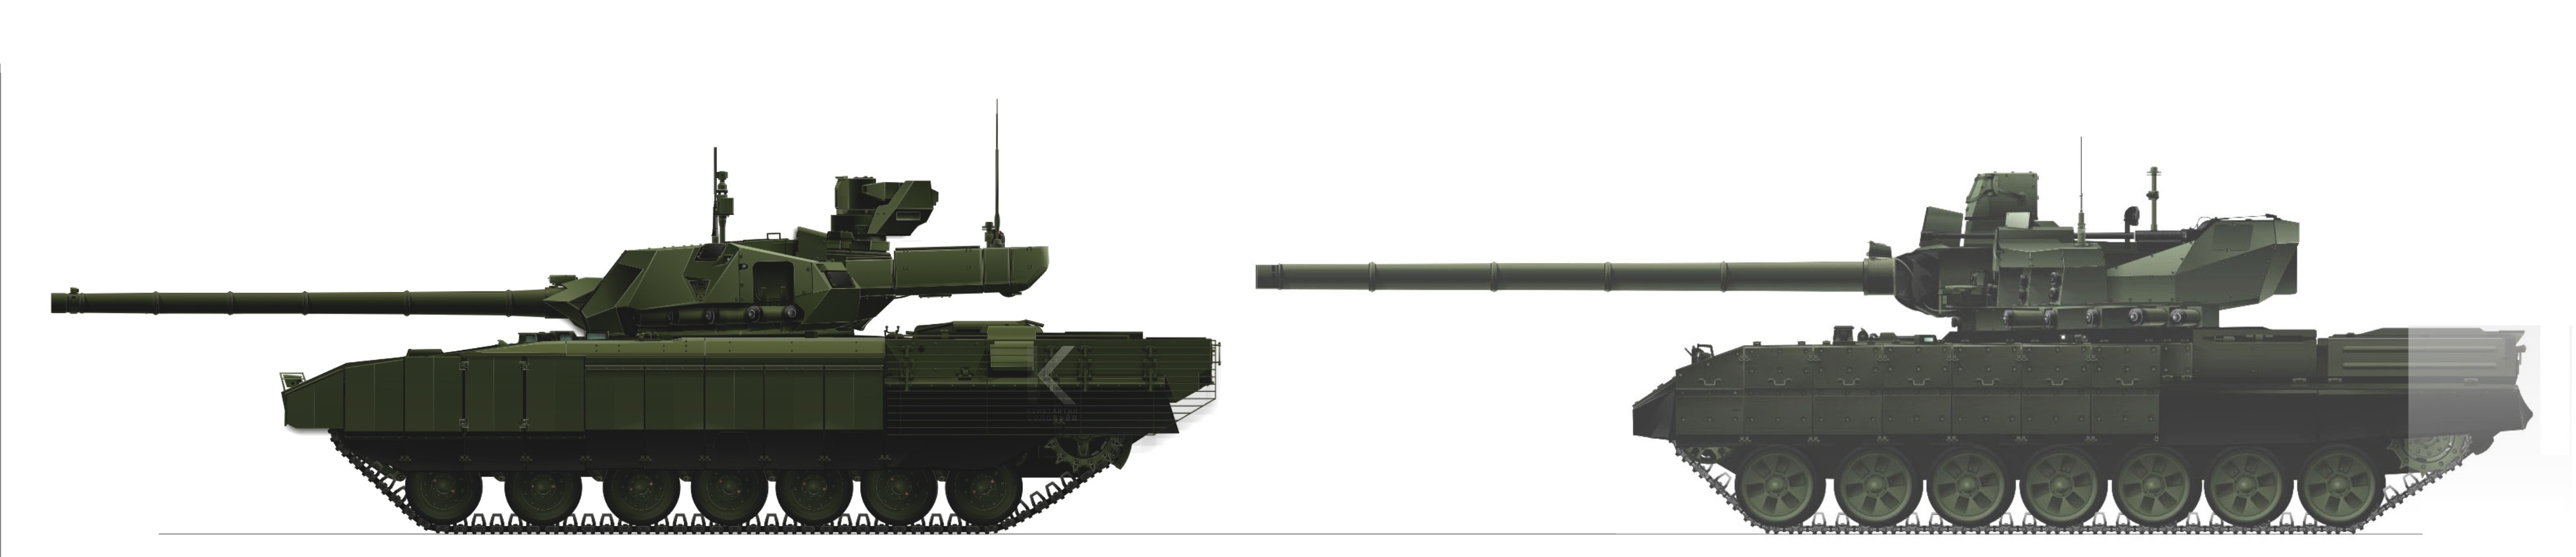 [Official] Armata Discussion thread #4 S7uJx